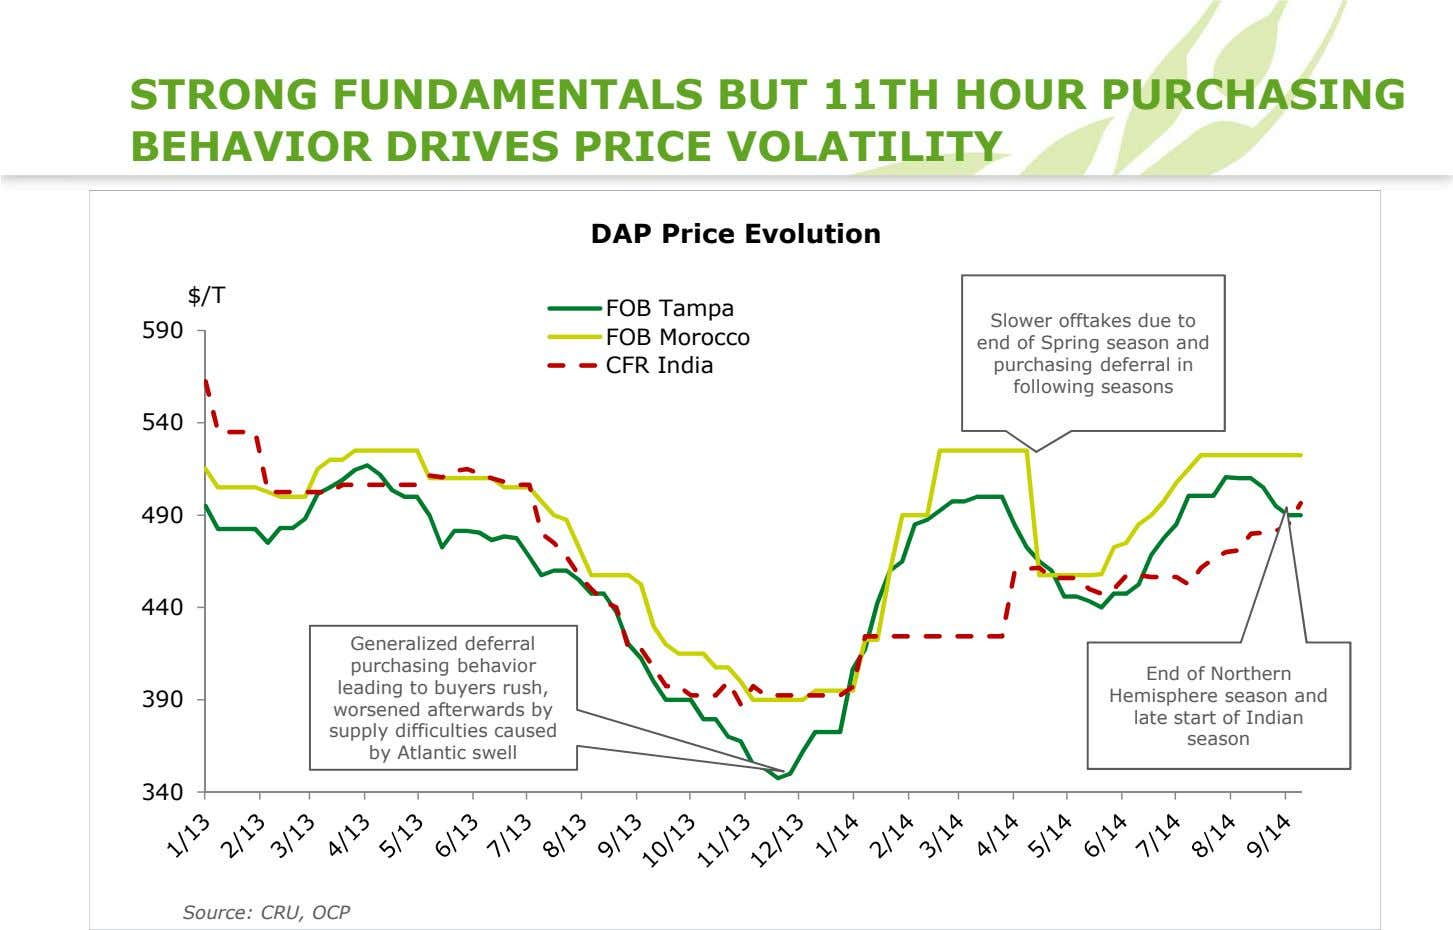 STRONG FUNDAMENTALS BUT 11TH HOUR PURCHASING BEHAVIOR DRIVES PRICE VOLATILITY DAP Price Evolution DAP Price